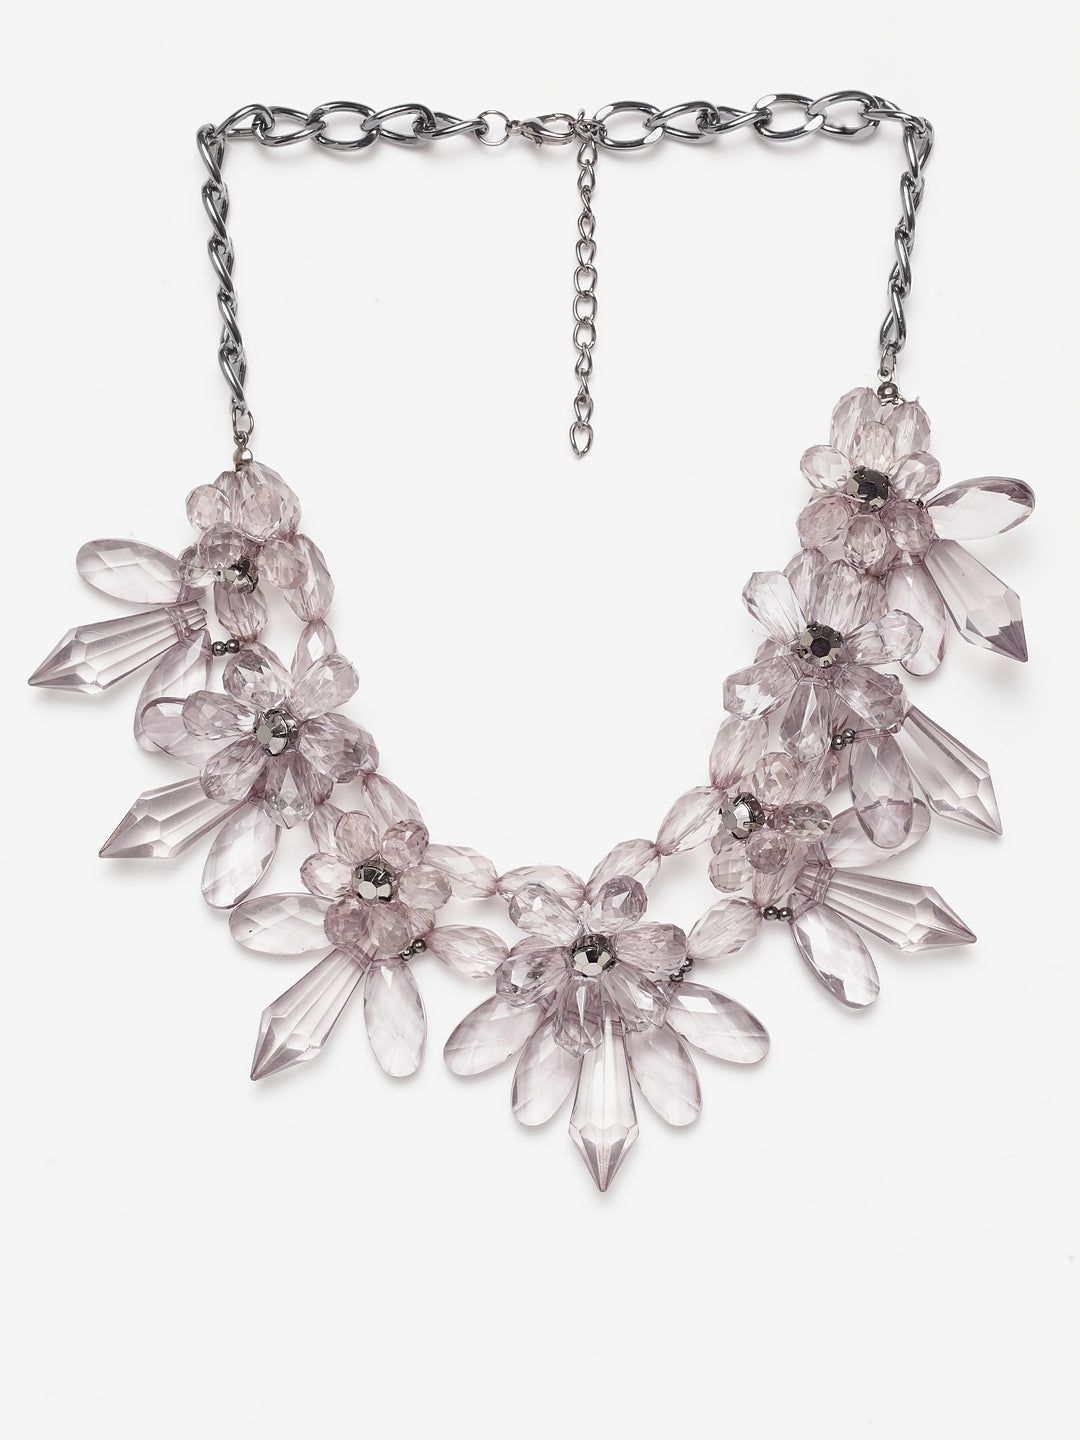 Avant-Garde Paris Statement Crystal Flower Necklace